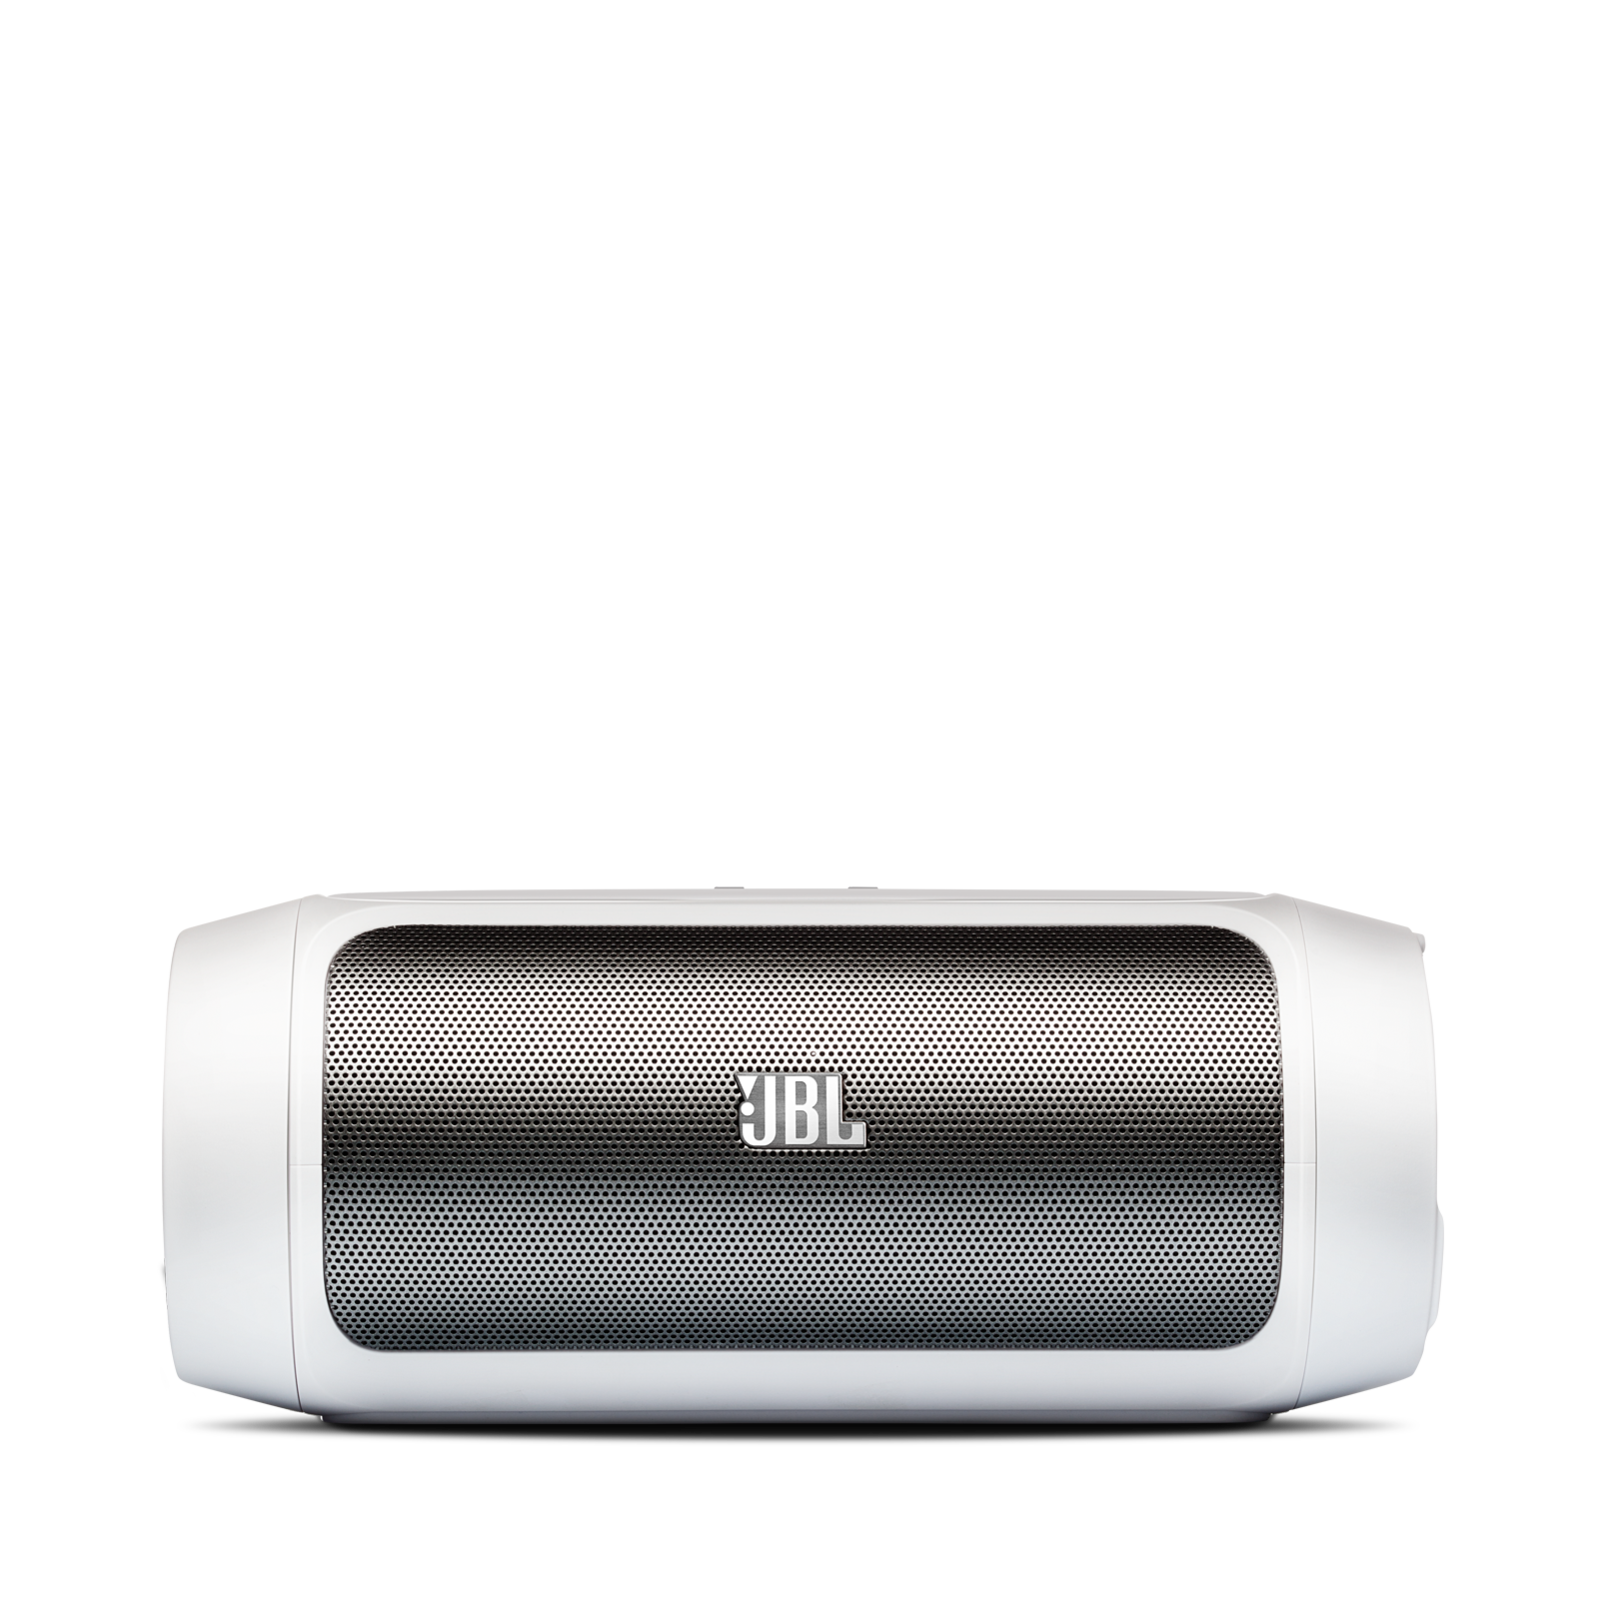 JBL Charge 2 | Portable wireless stereo speaker with massive battery